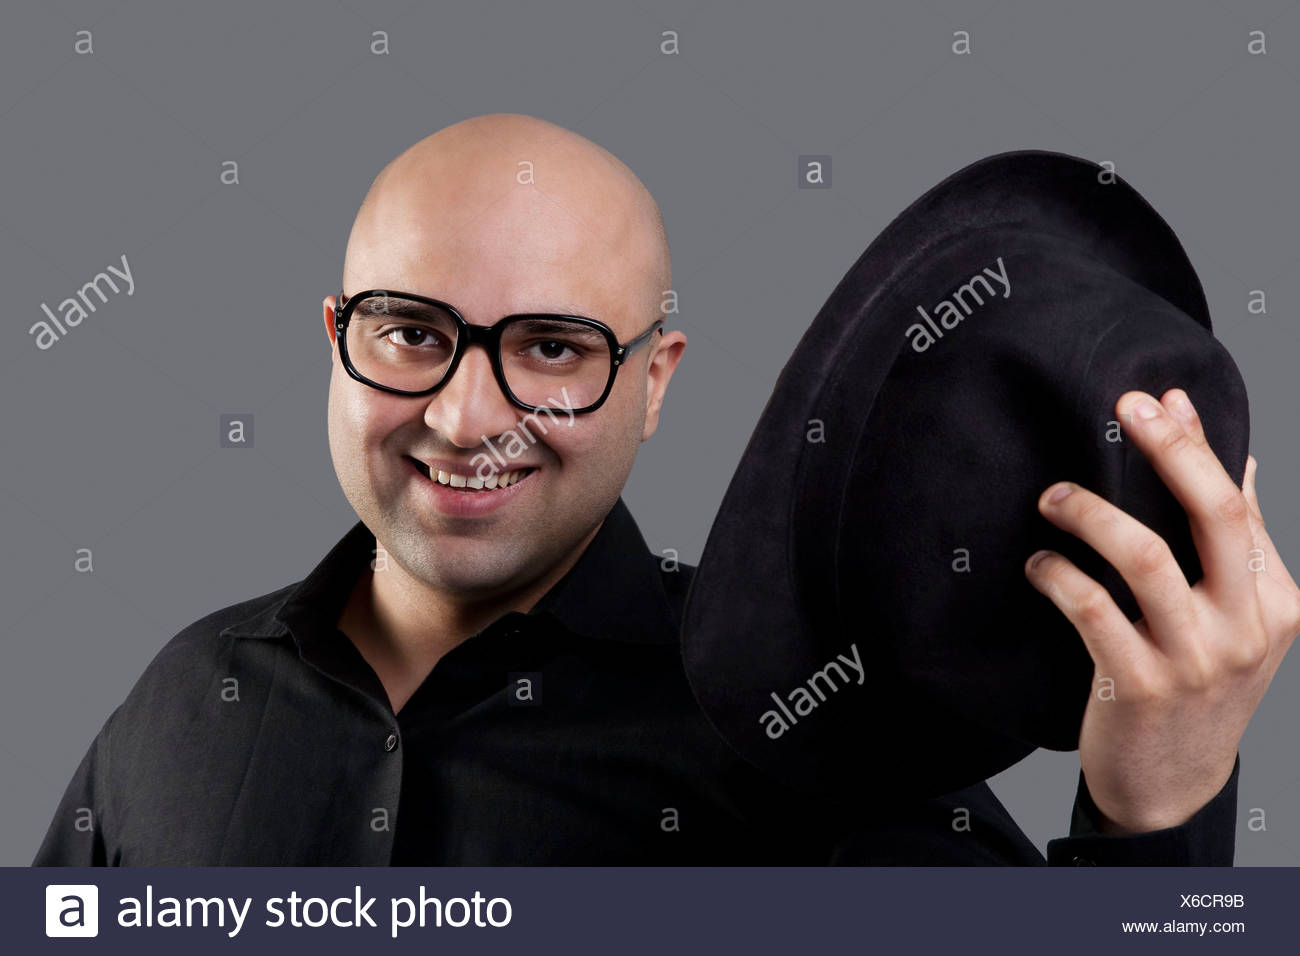 Bald man taking off his hat Stock Photo